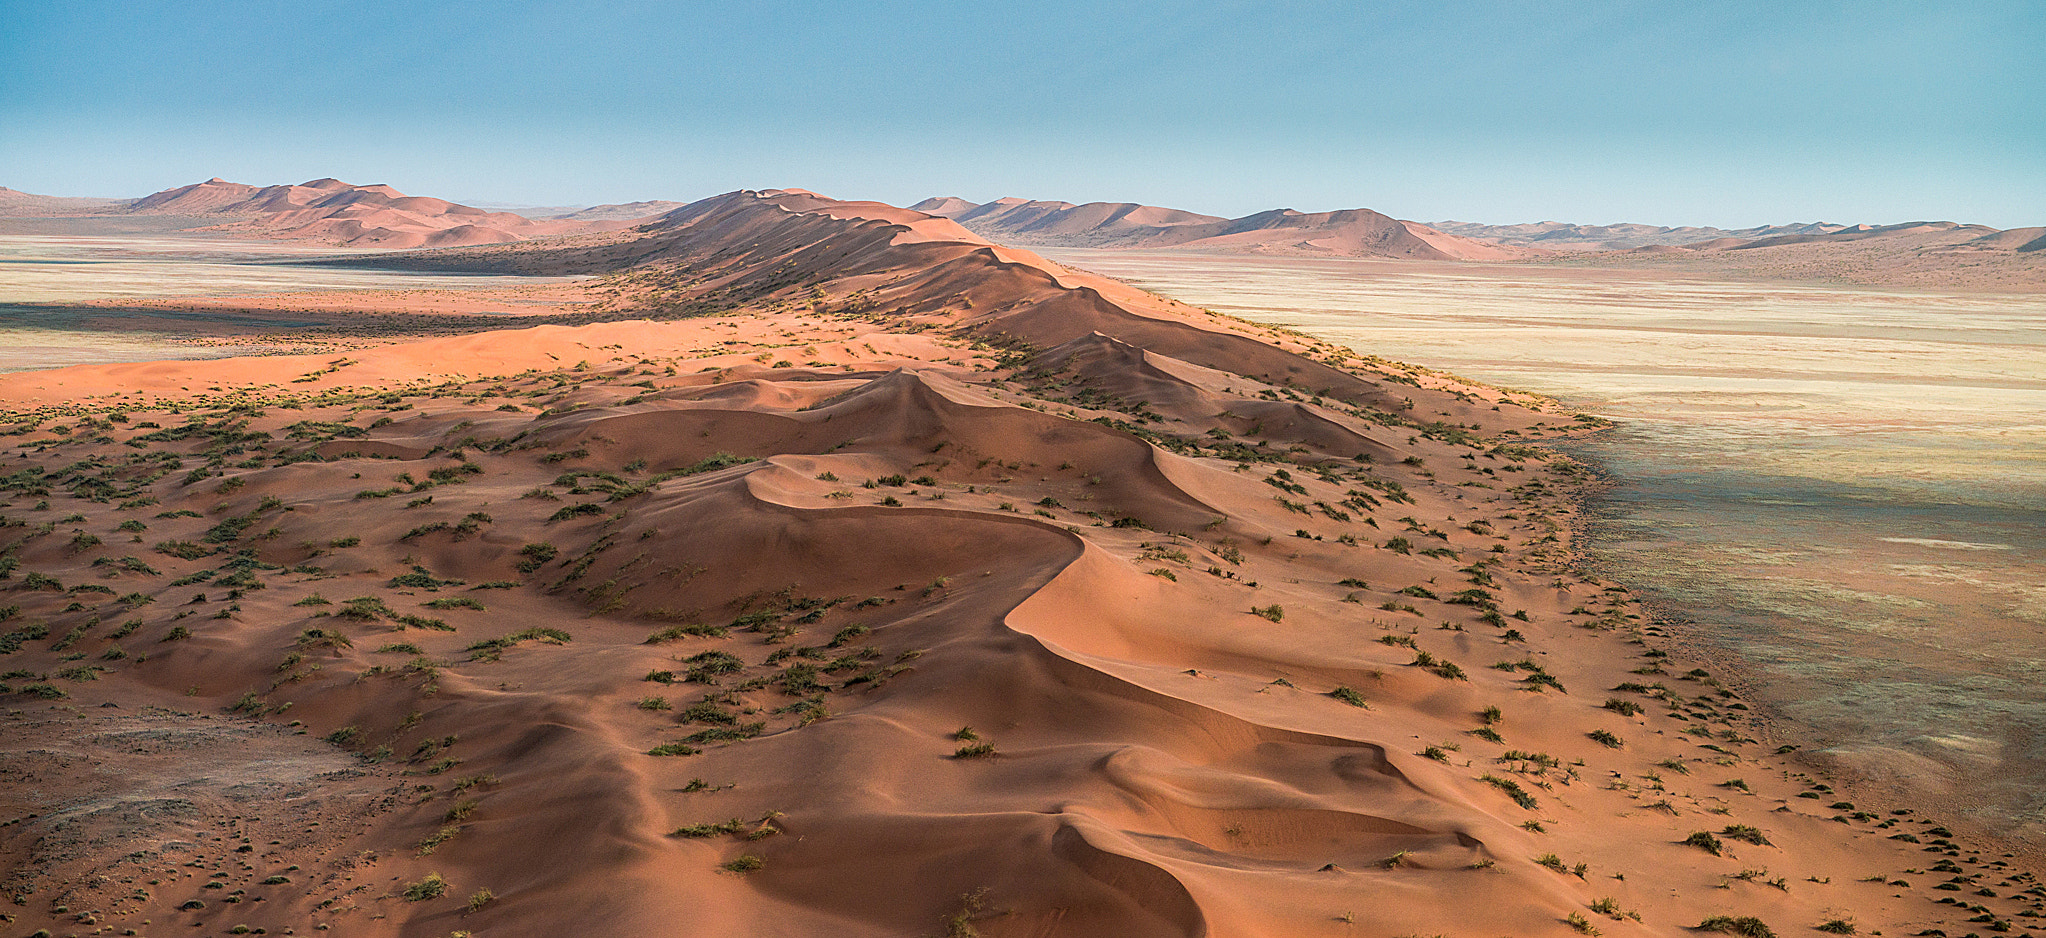 Photograph Namib Desert from the sky by Nick Legrand on 500px